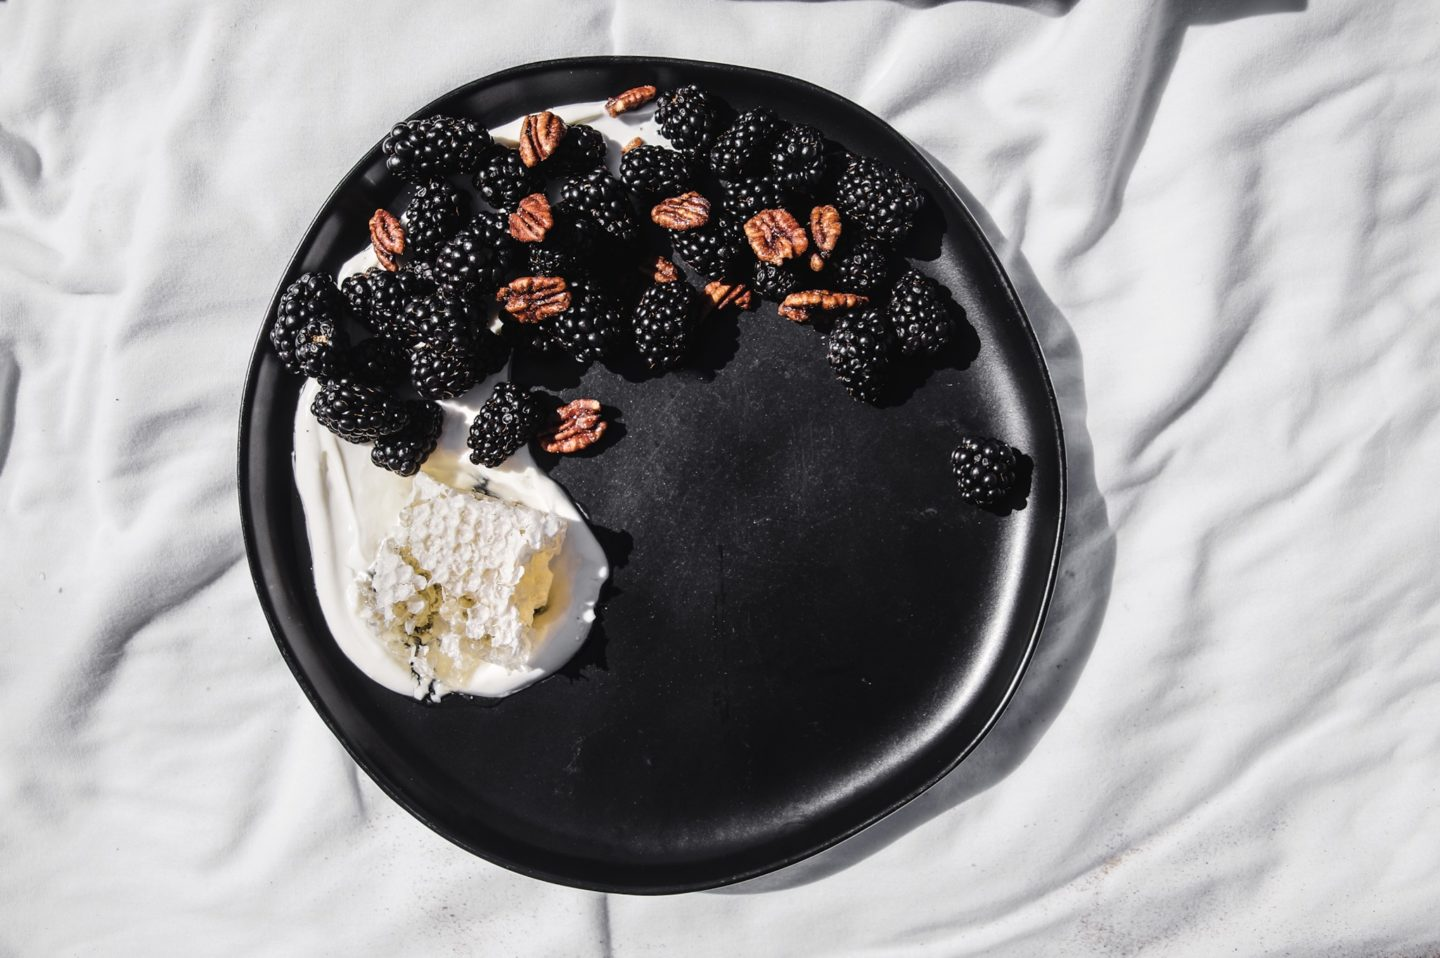 creme fraiche smeared on a plate with honeycomb blackberries and candied pecans.